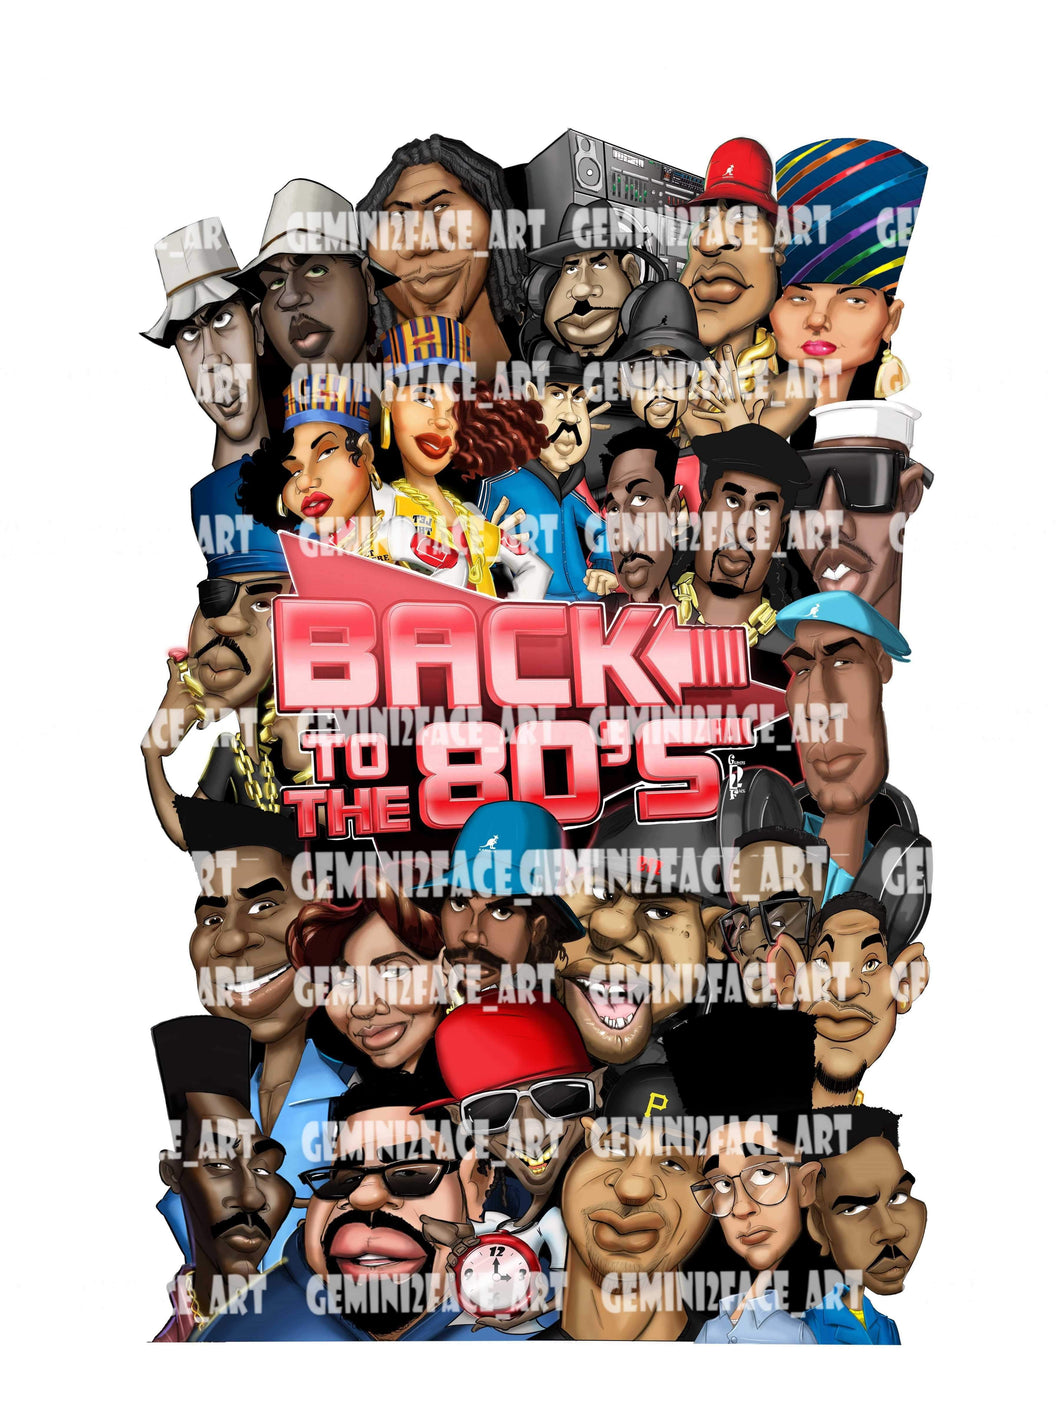 Back To The 80's (Hip-Hop Mural) Print Gemini2face Art E-Store